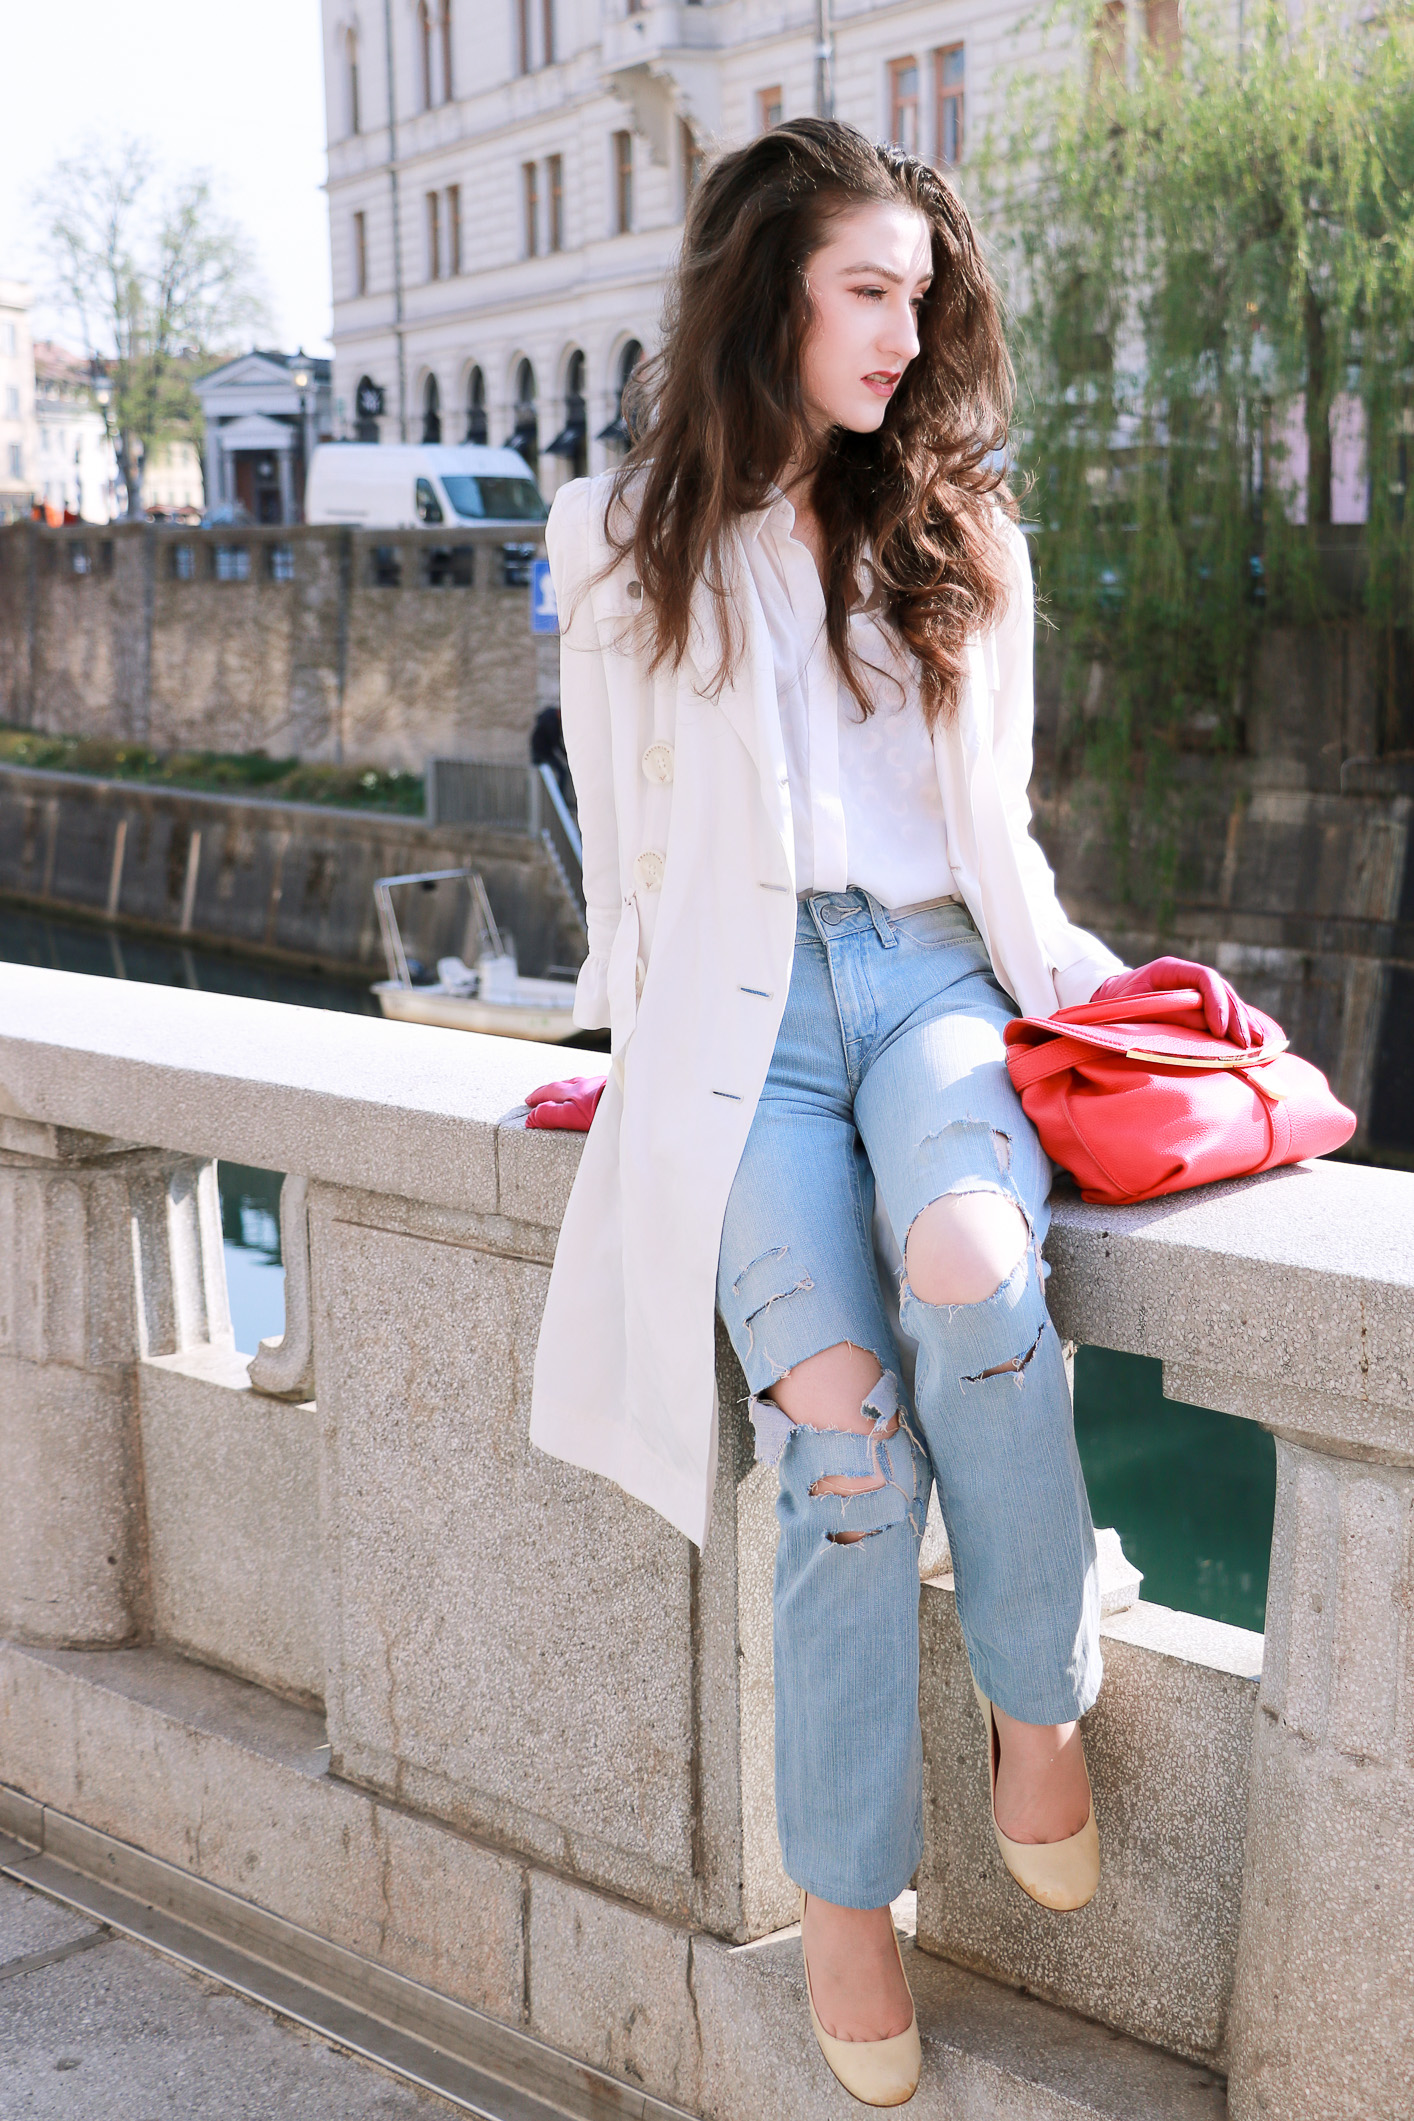 Fashion blogger Veronika Lipar of Brunette From Wall Street sharing how to wear white pumps and hot pink bag